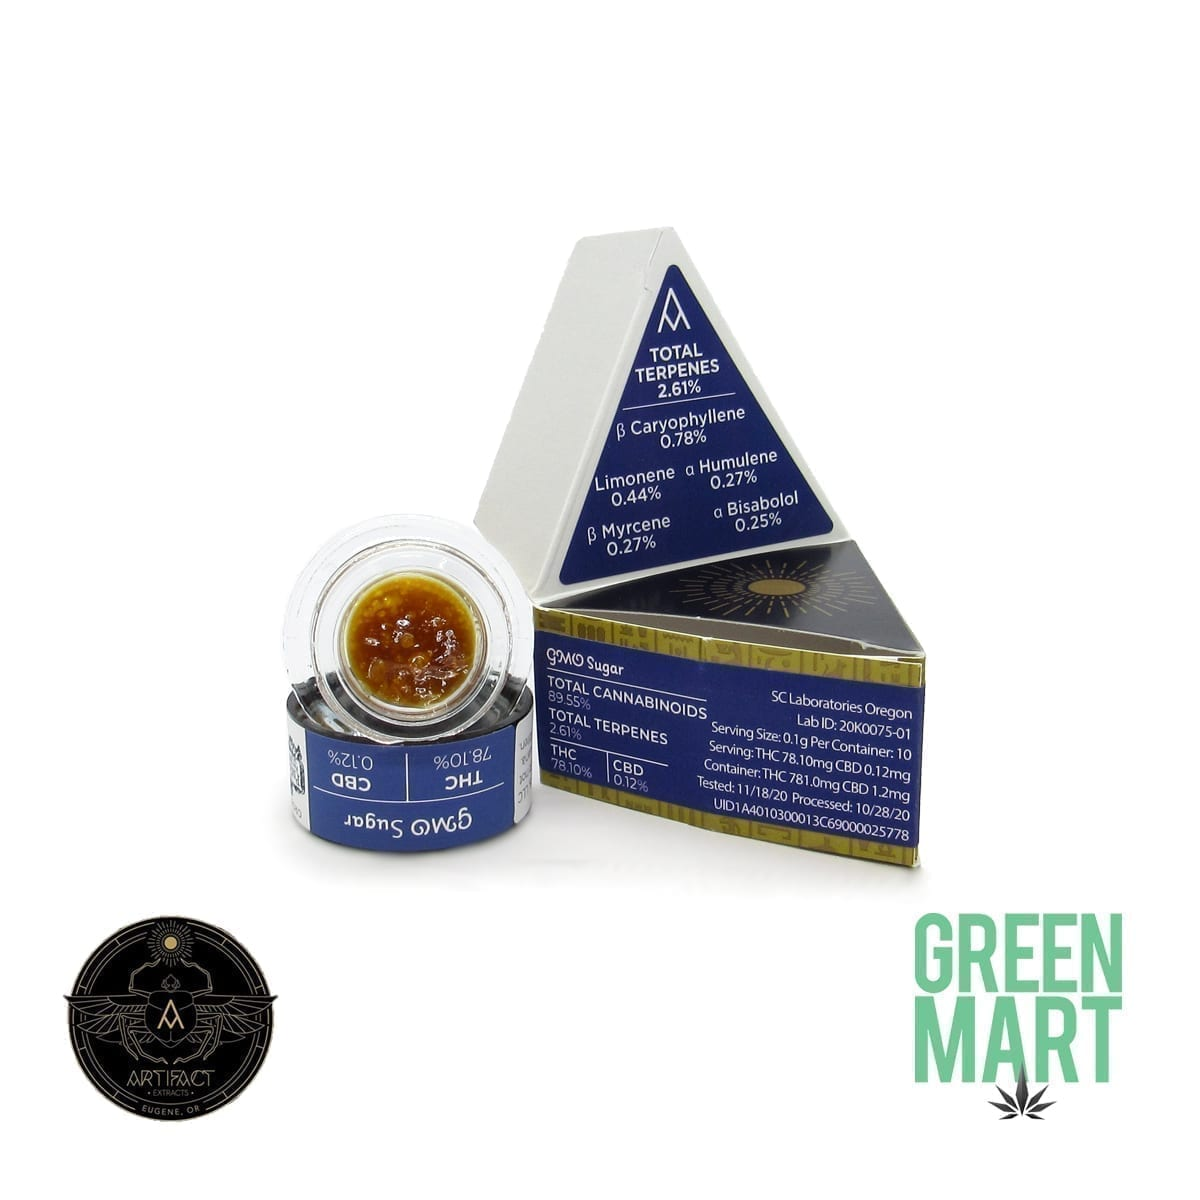 Artifact Extracts - GMO Sugar